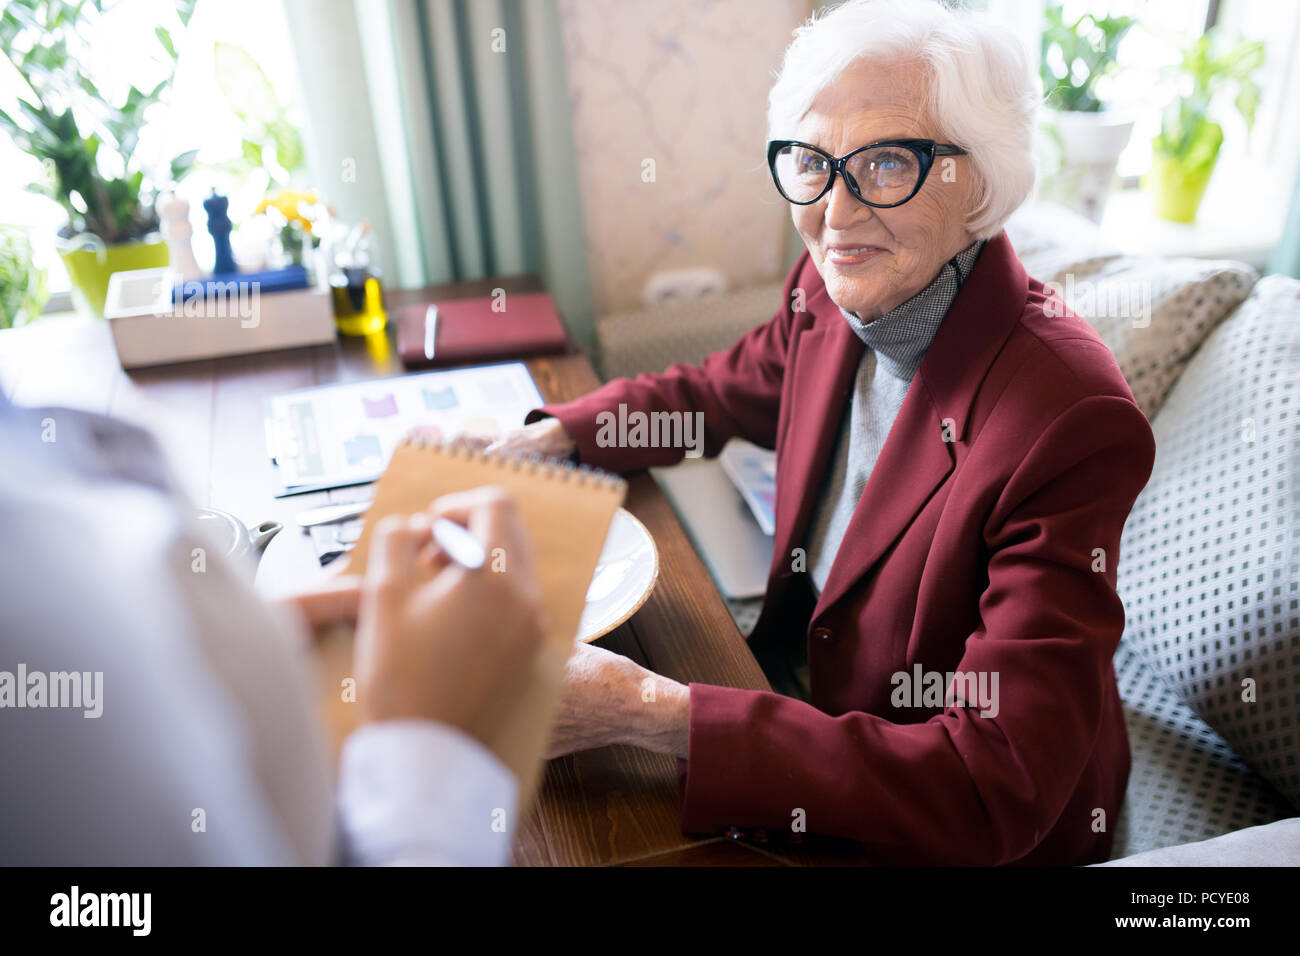 Senior woman de rendre une ordonnance Photo Stock